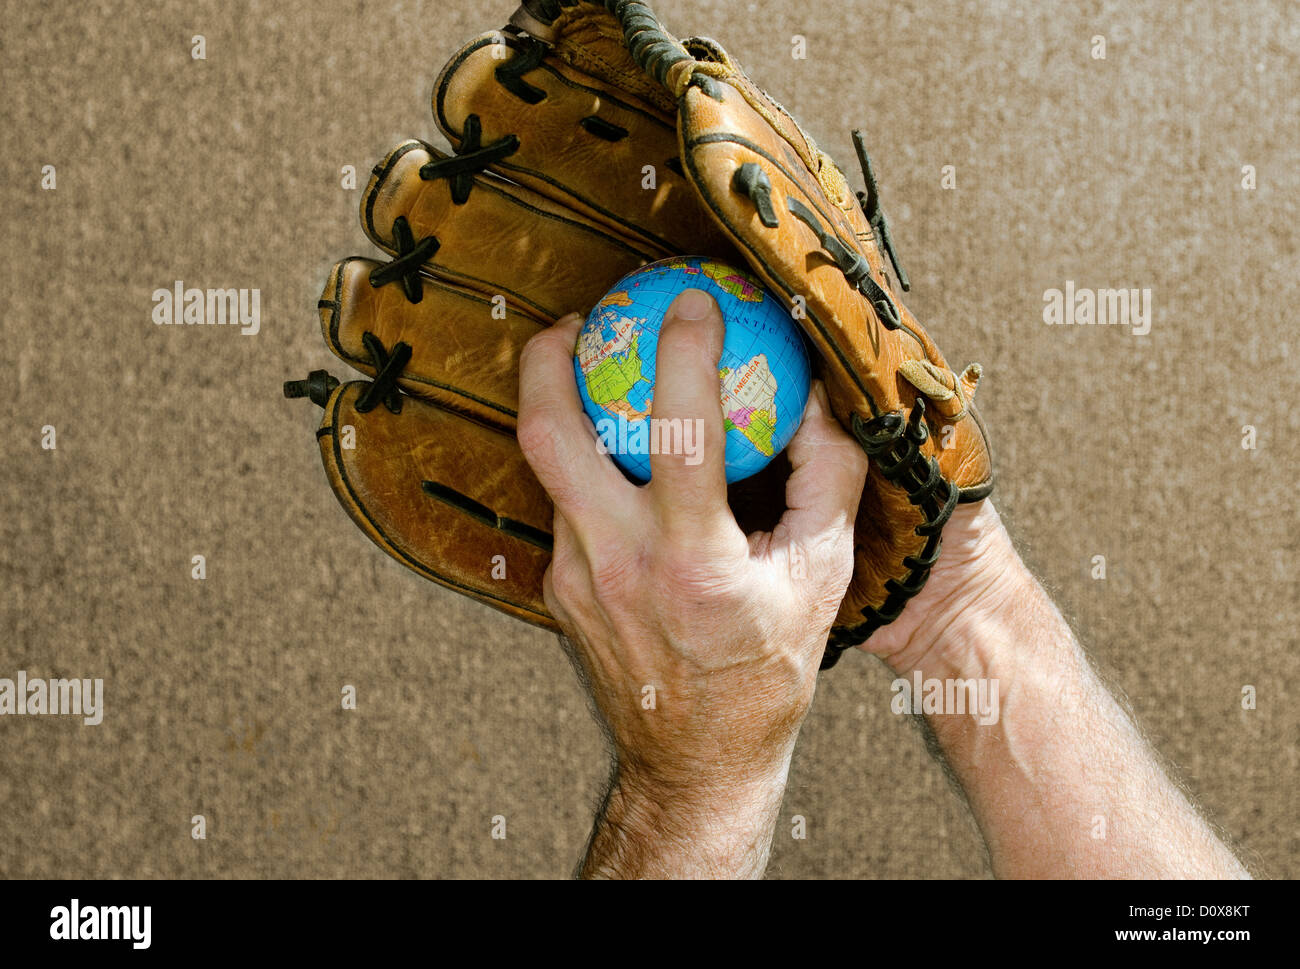 baseball pitcher holding globe in baseball glove - Stock Image